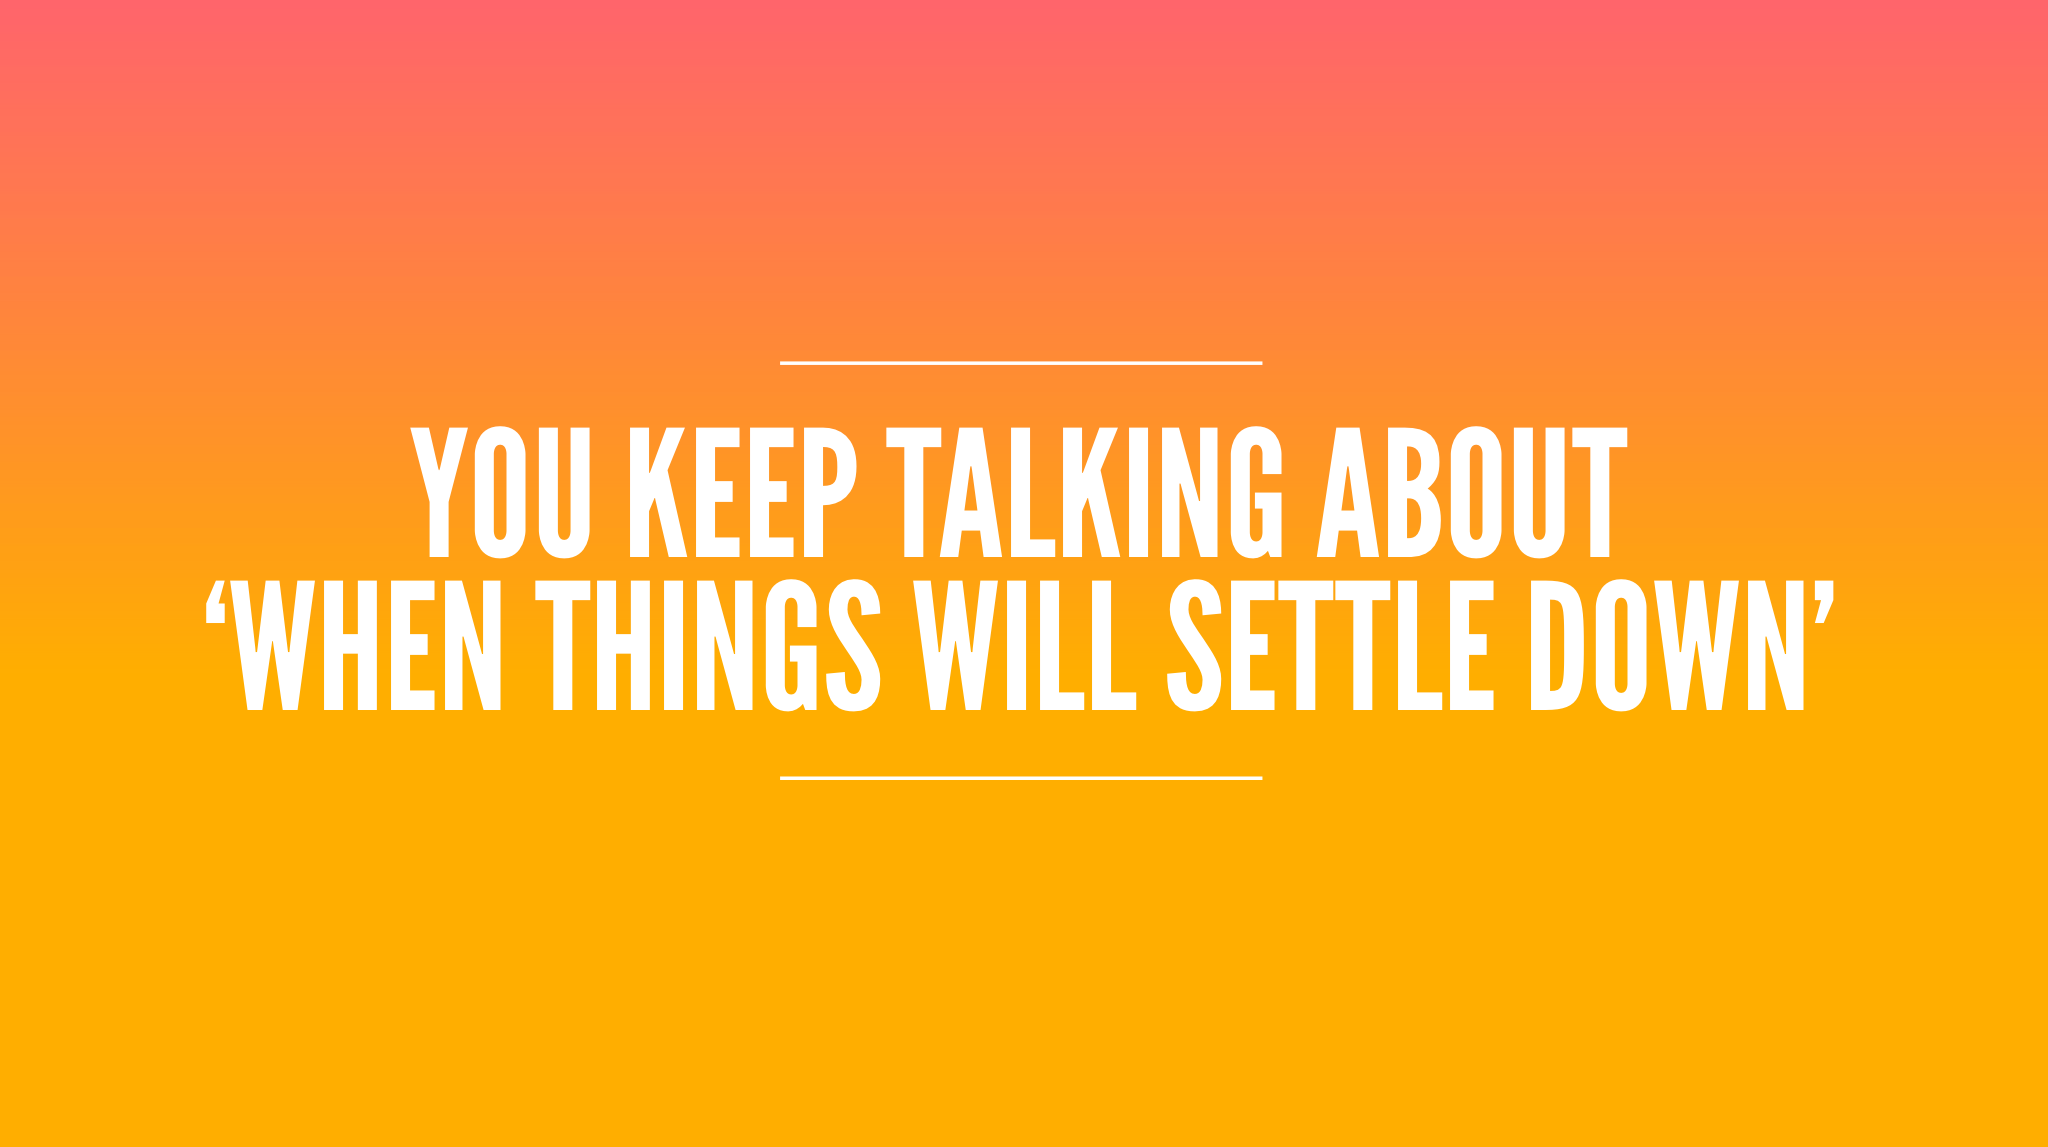 You keep talking about 'when things settle down'